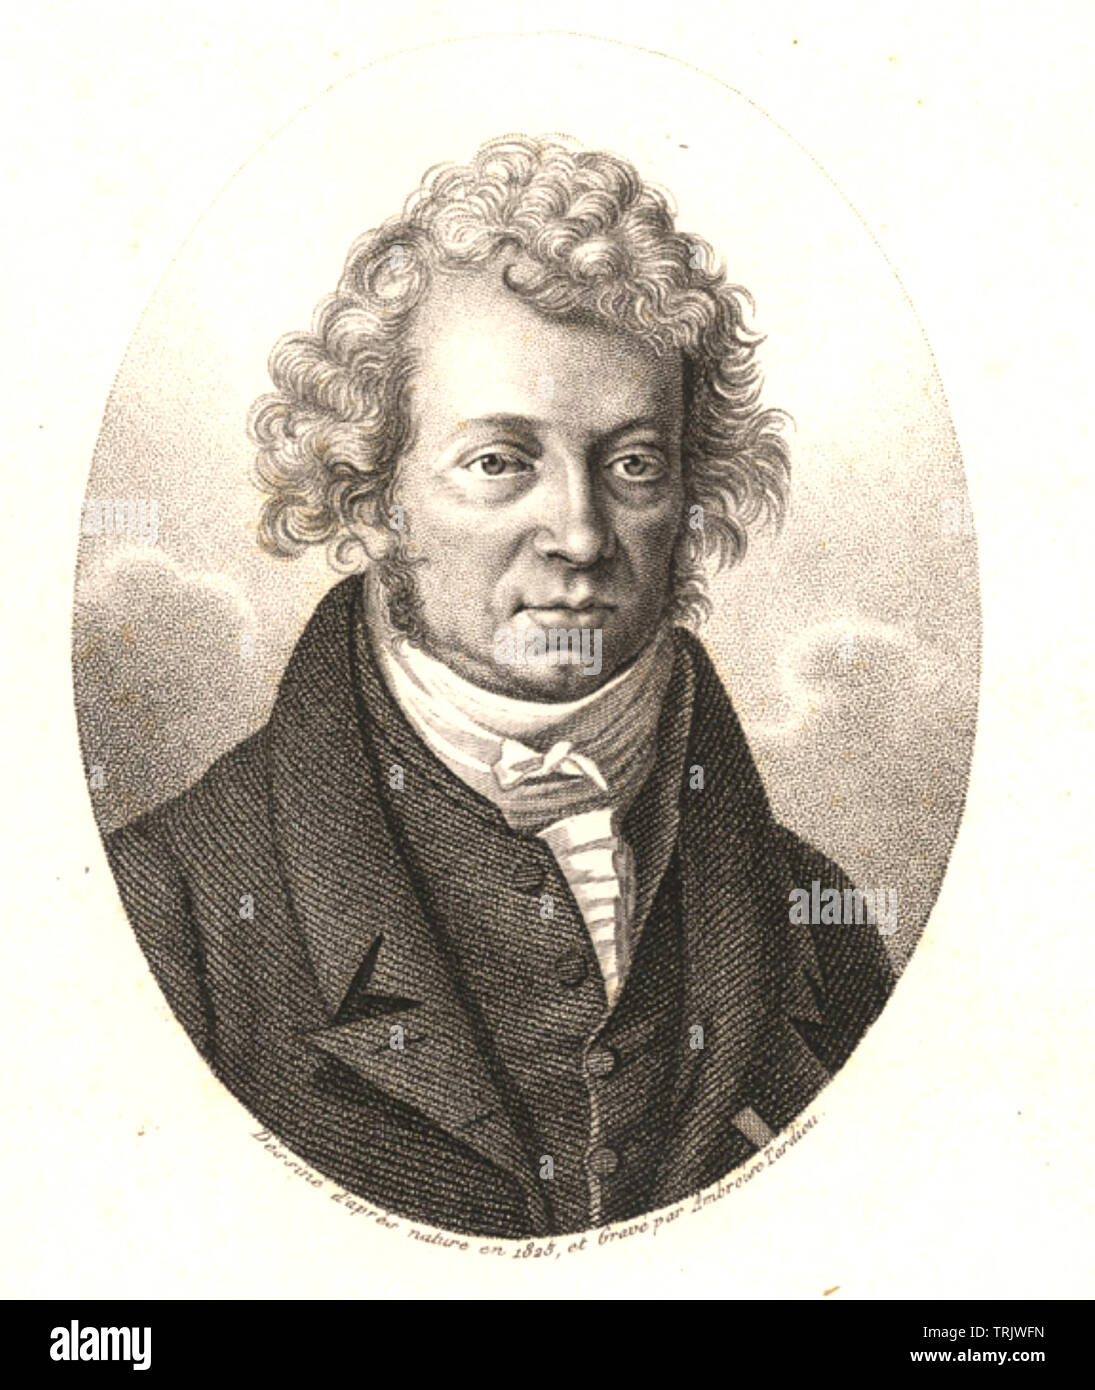 ANDRÉ-MARIE AMPĖRE (1775-1836) French physicist and mathematician - Stock Image